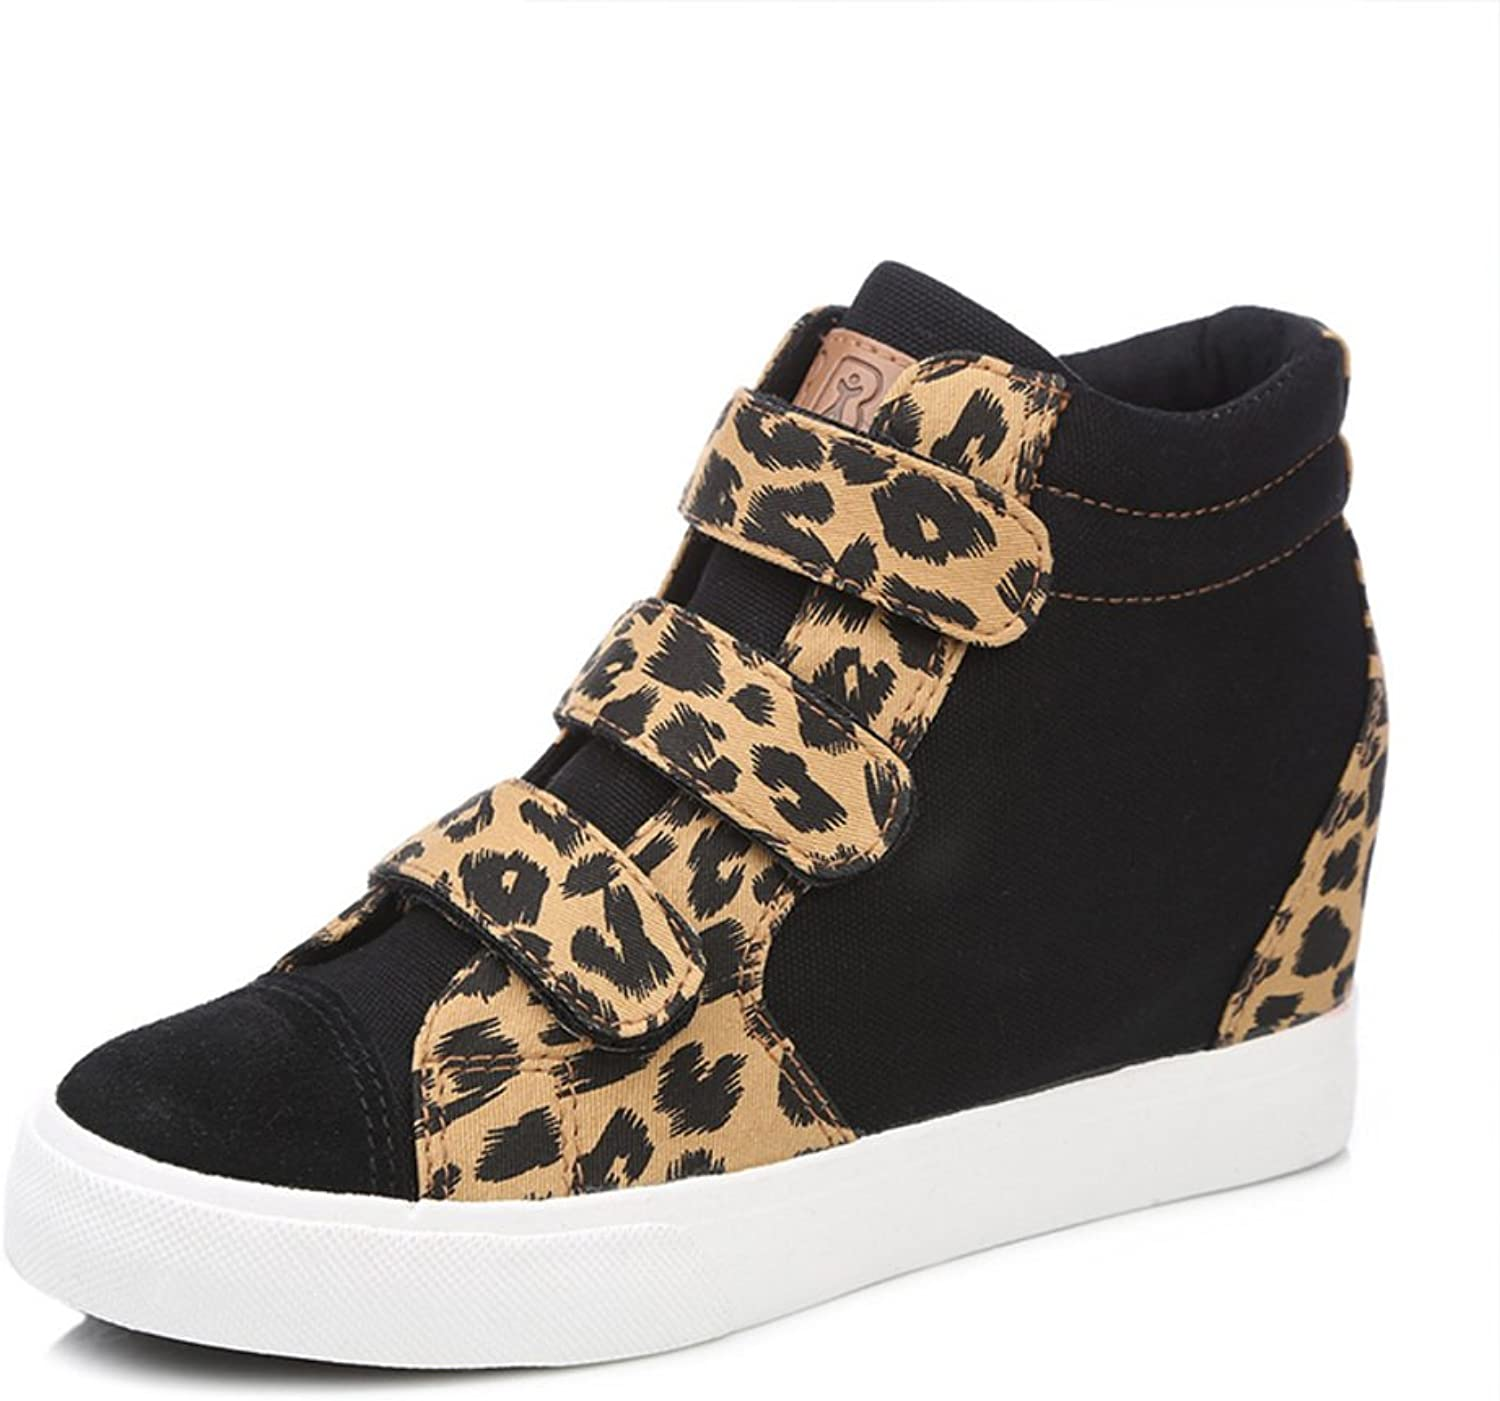 WLJSLLZYQ Women Canvas shoes Autumn Trend Leopard Print Velcro Womens shoes Increased in Thick-Soled shoes with high shoes